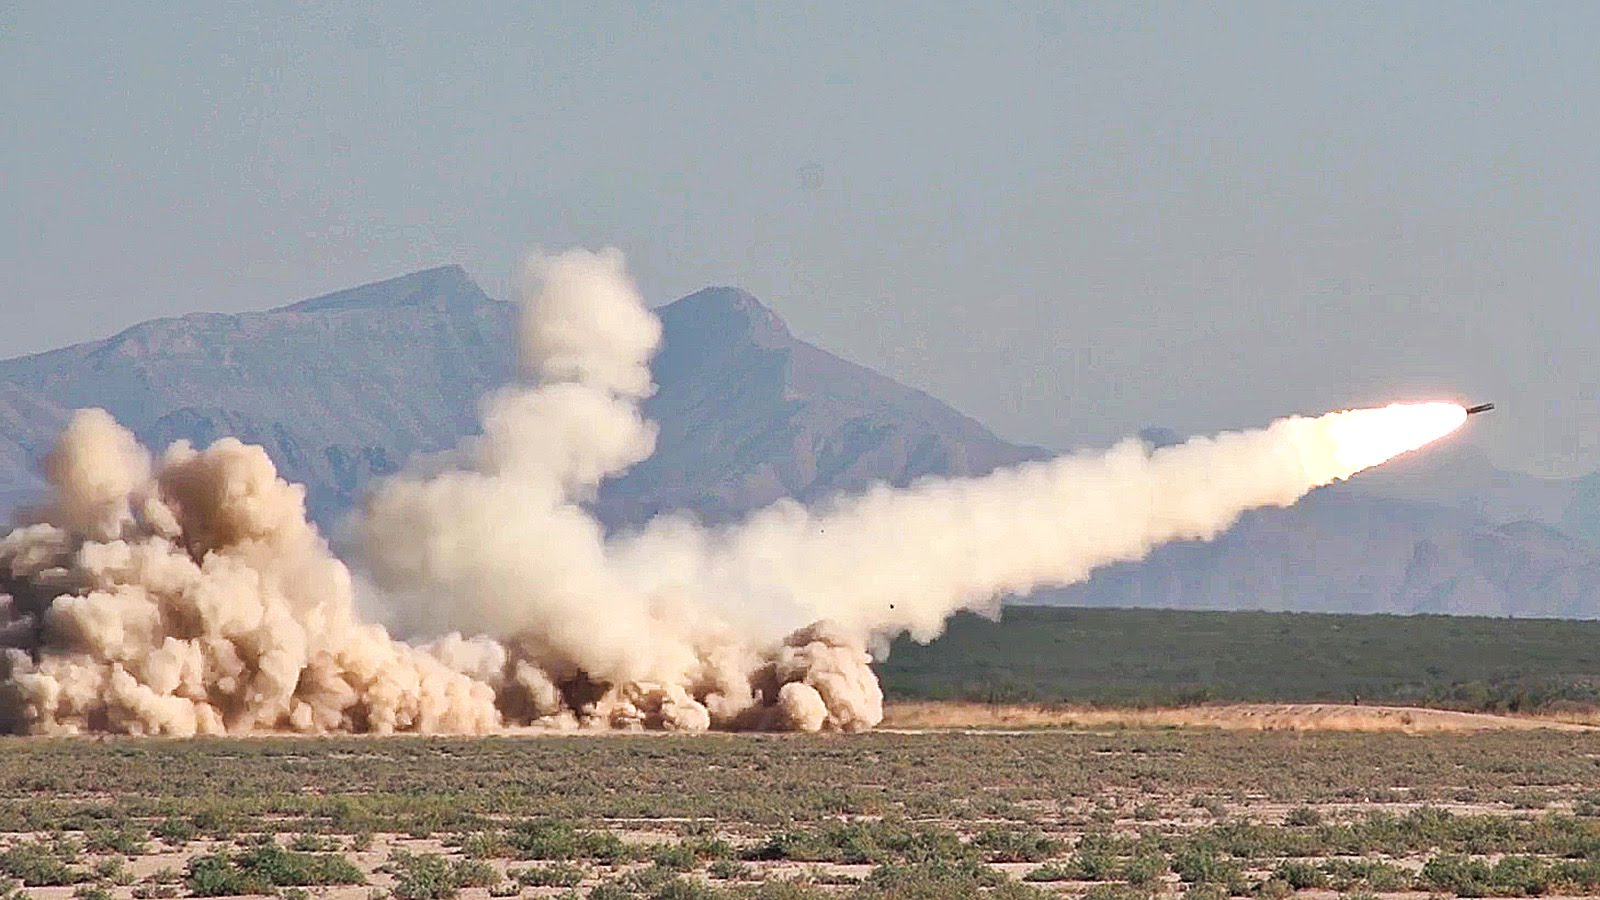 M270A1 Multiple Launch Rocket System (MLRS) Test Fire